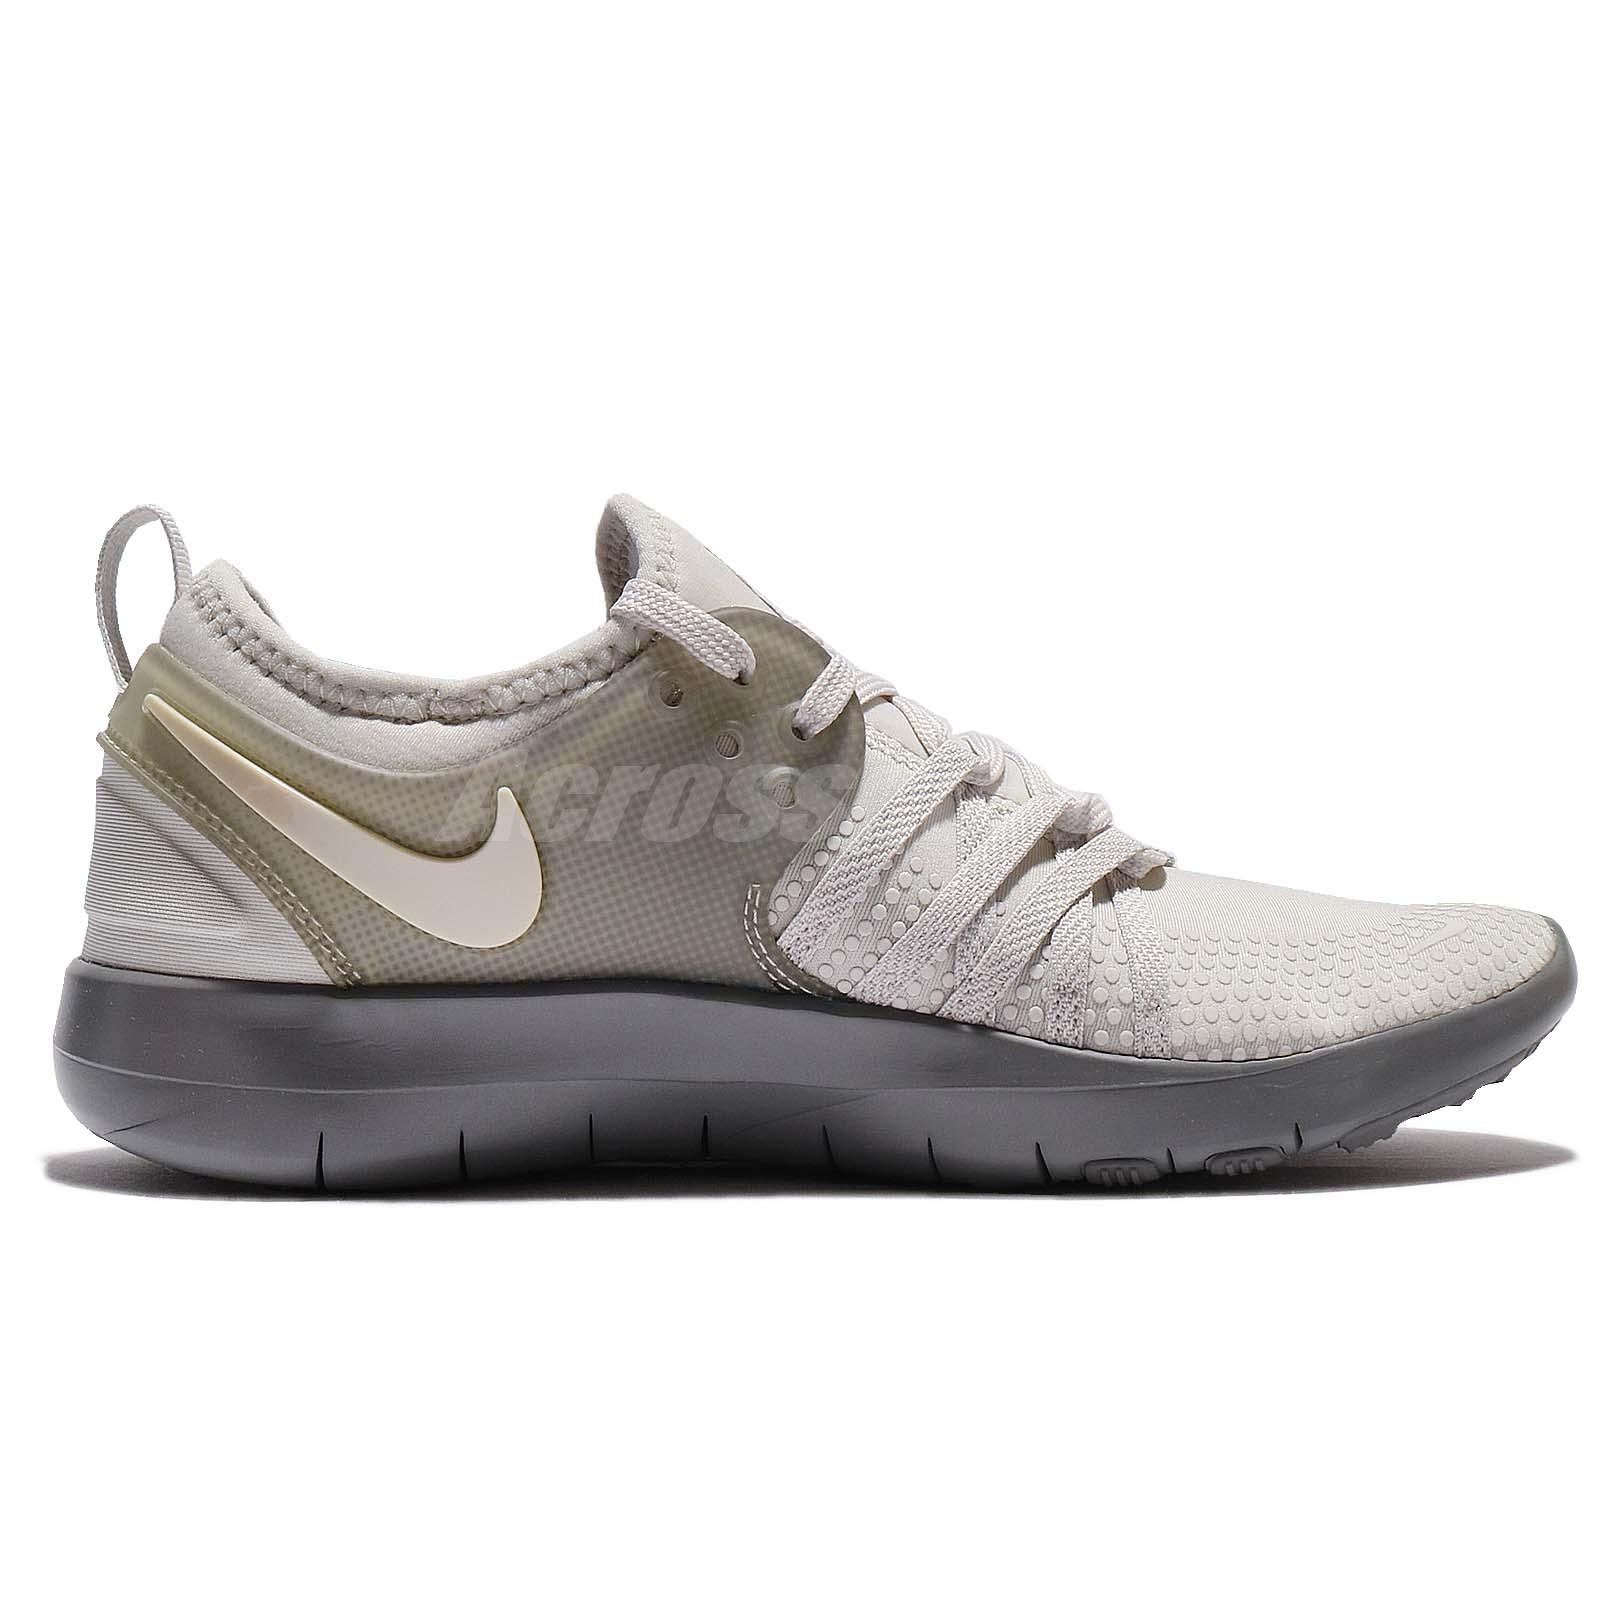 063f34c013b89 Wmns Nike Free TR 7 VII Shield Water-Repellent Women Training Shoes ...